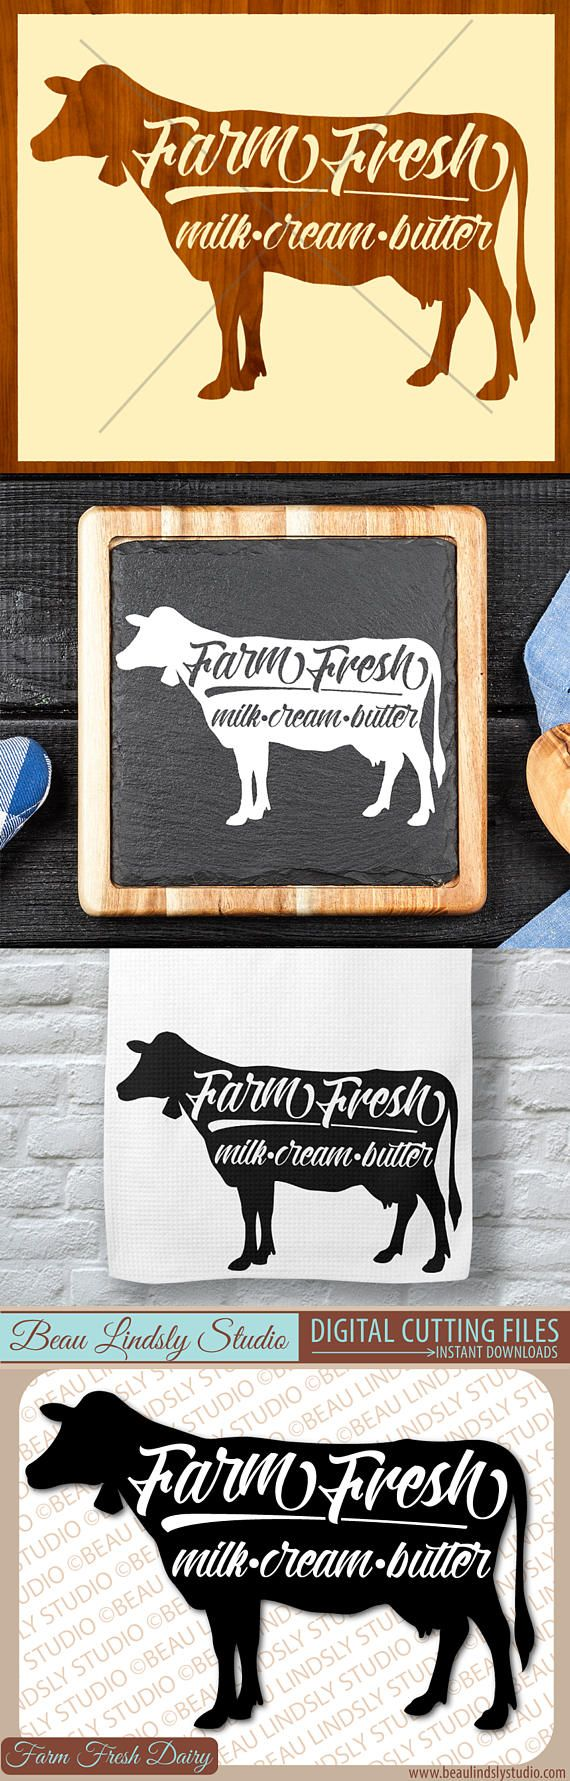 Milk Cow SVG, Country Cow Clipart, Farm Fresh Milk SVG File For Silhouette Pattern, SVG File For Cricut Projects. SVG Format File, DXF File and PNG Image File all included.  This happy design features a Guernsey Dairy Cow with a Farm Fresh Milk, Cream, Butter sign on top. So many fun projects could be made with this country vinyl design from an etched glass cutting board to vinyl or printed wall art to towels and so much more! By: www.beaulindslystudio.com